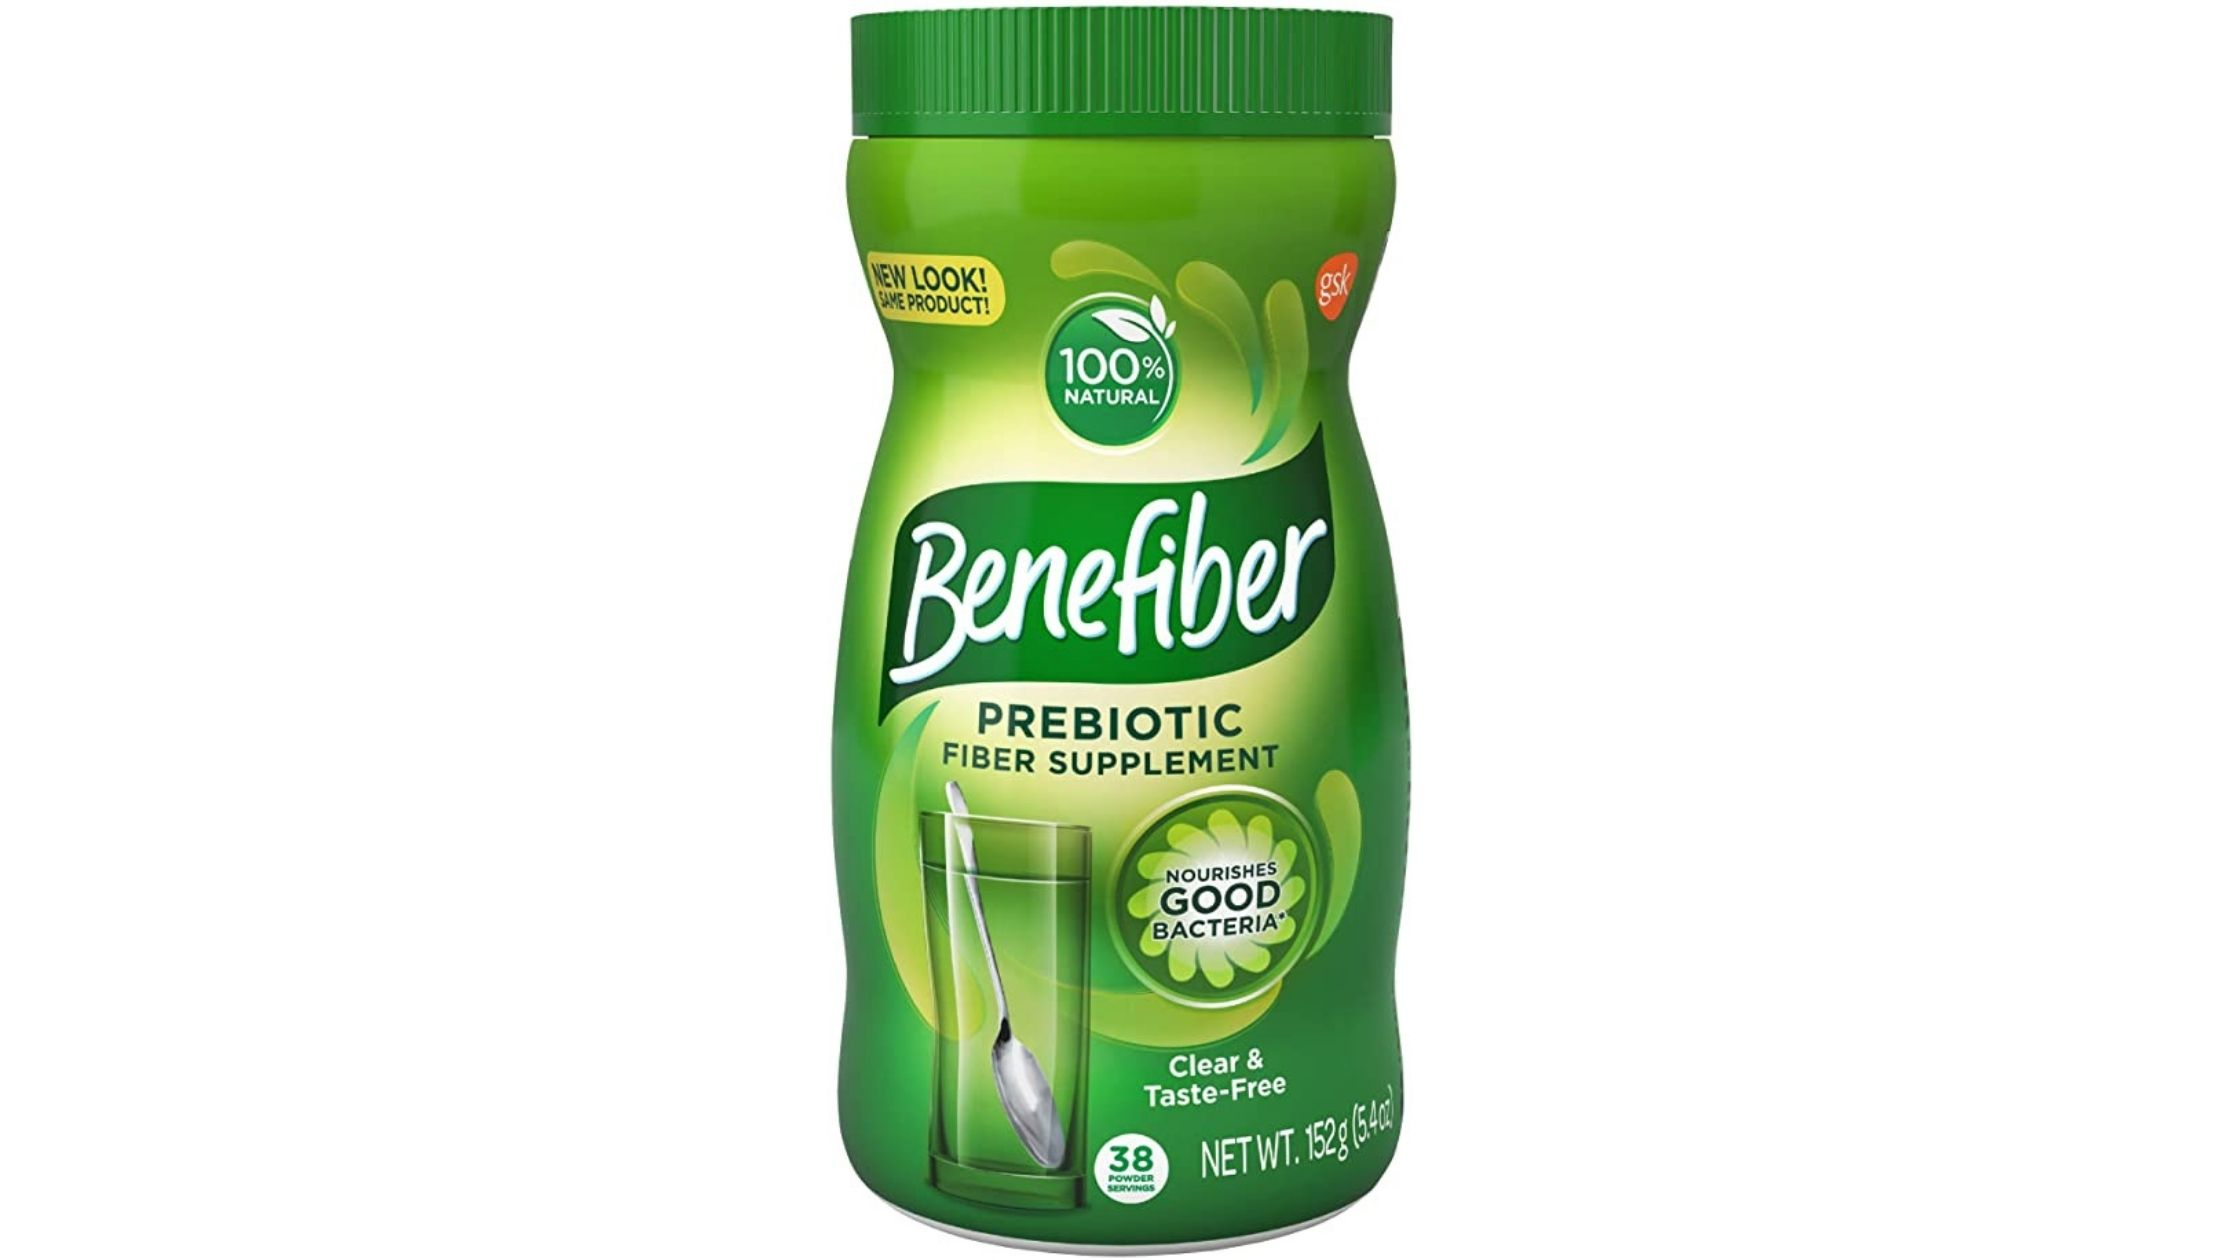 Benefiber Daily Prebiotic dietary fiber